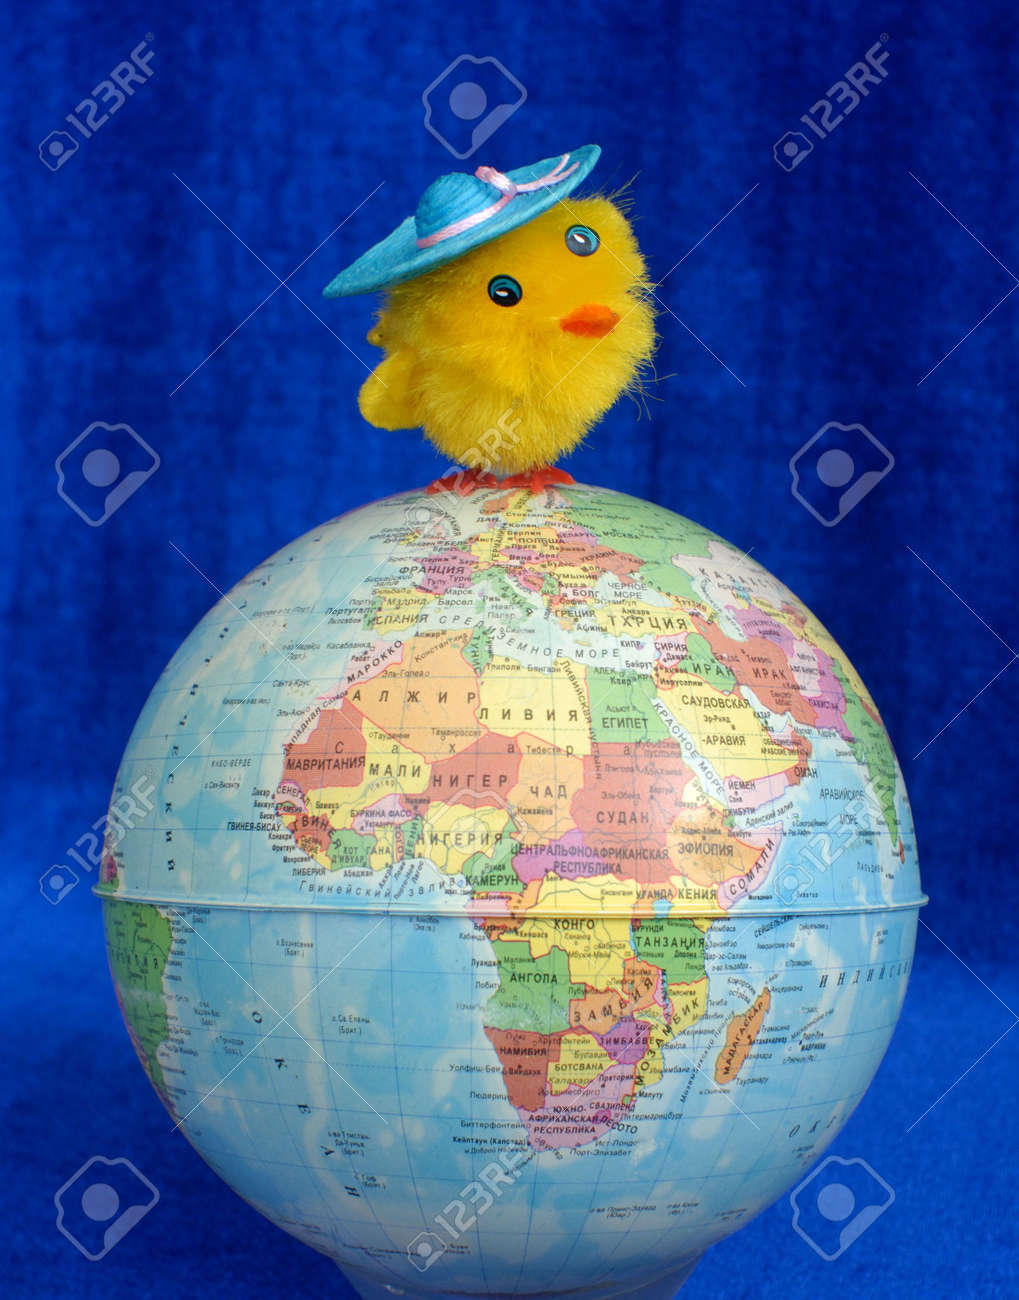 2e4fe2e0286d The Fluffy Toy Of A Chicken Costs At Top Of The Globe. Stock Photo ...